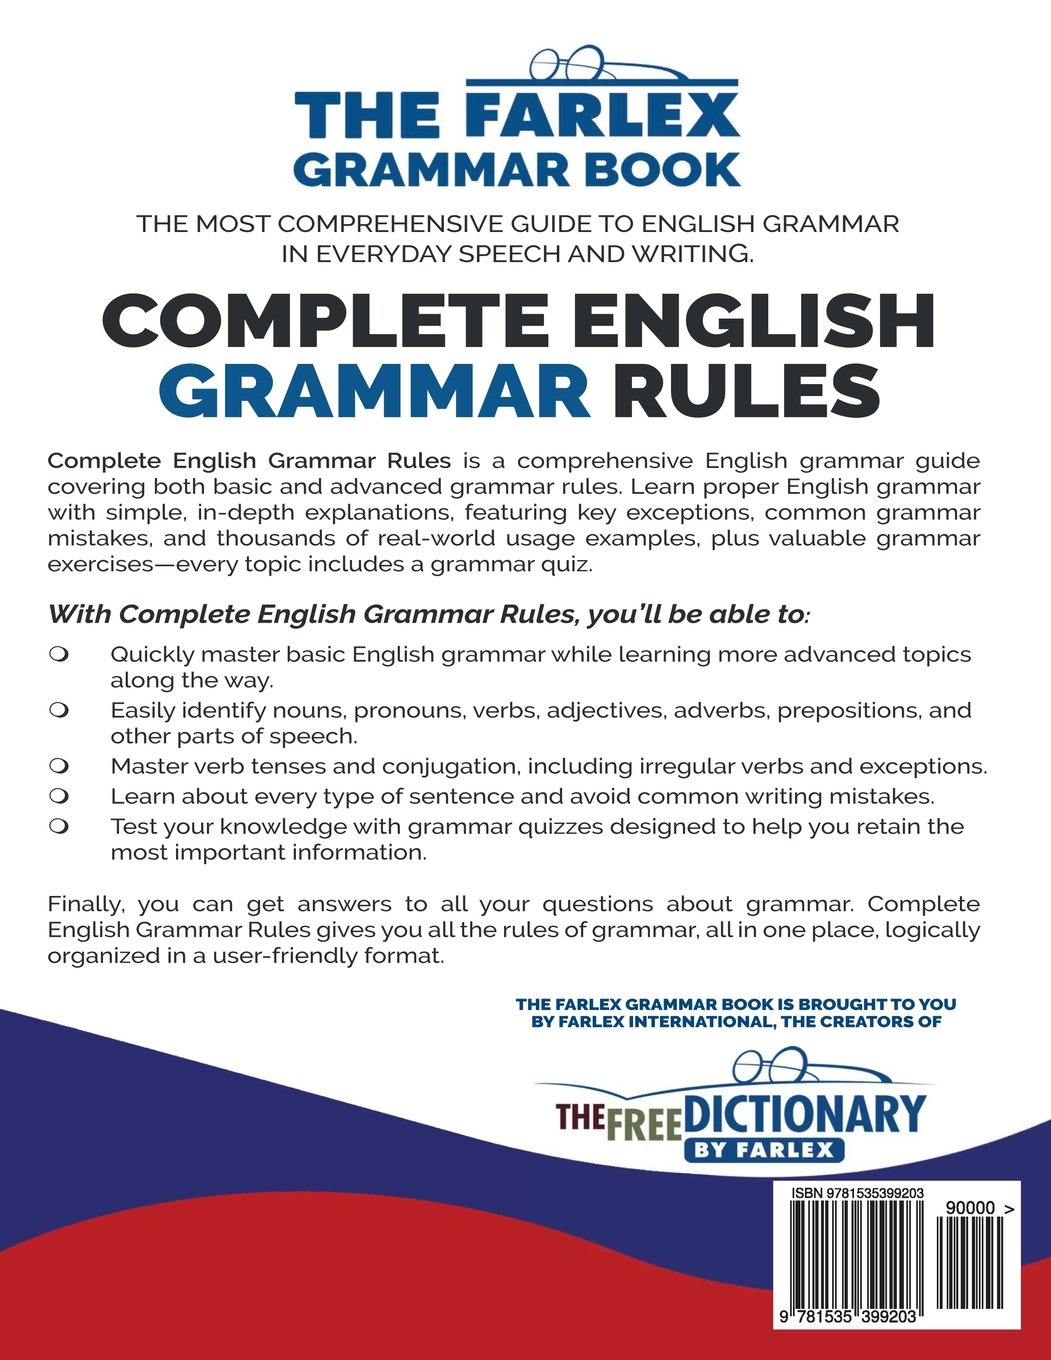 Complete english grammar rules examples exceptions exercises and everything you need to master proper grammar the farlex grammar book volume 1